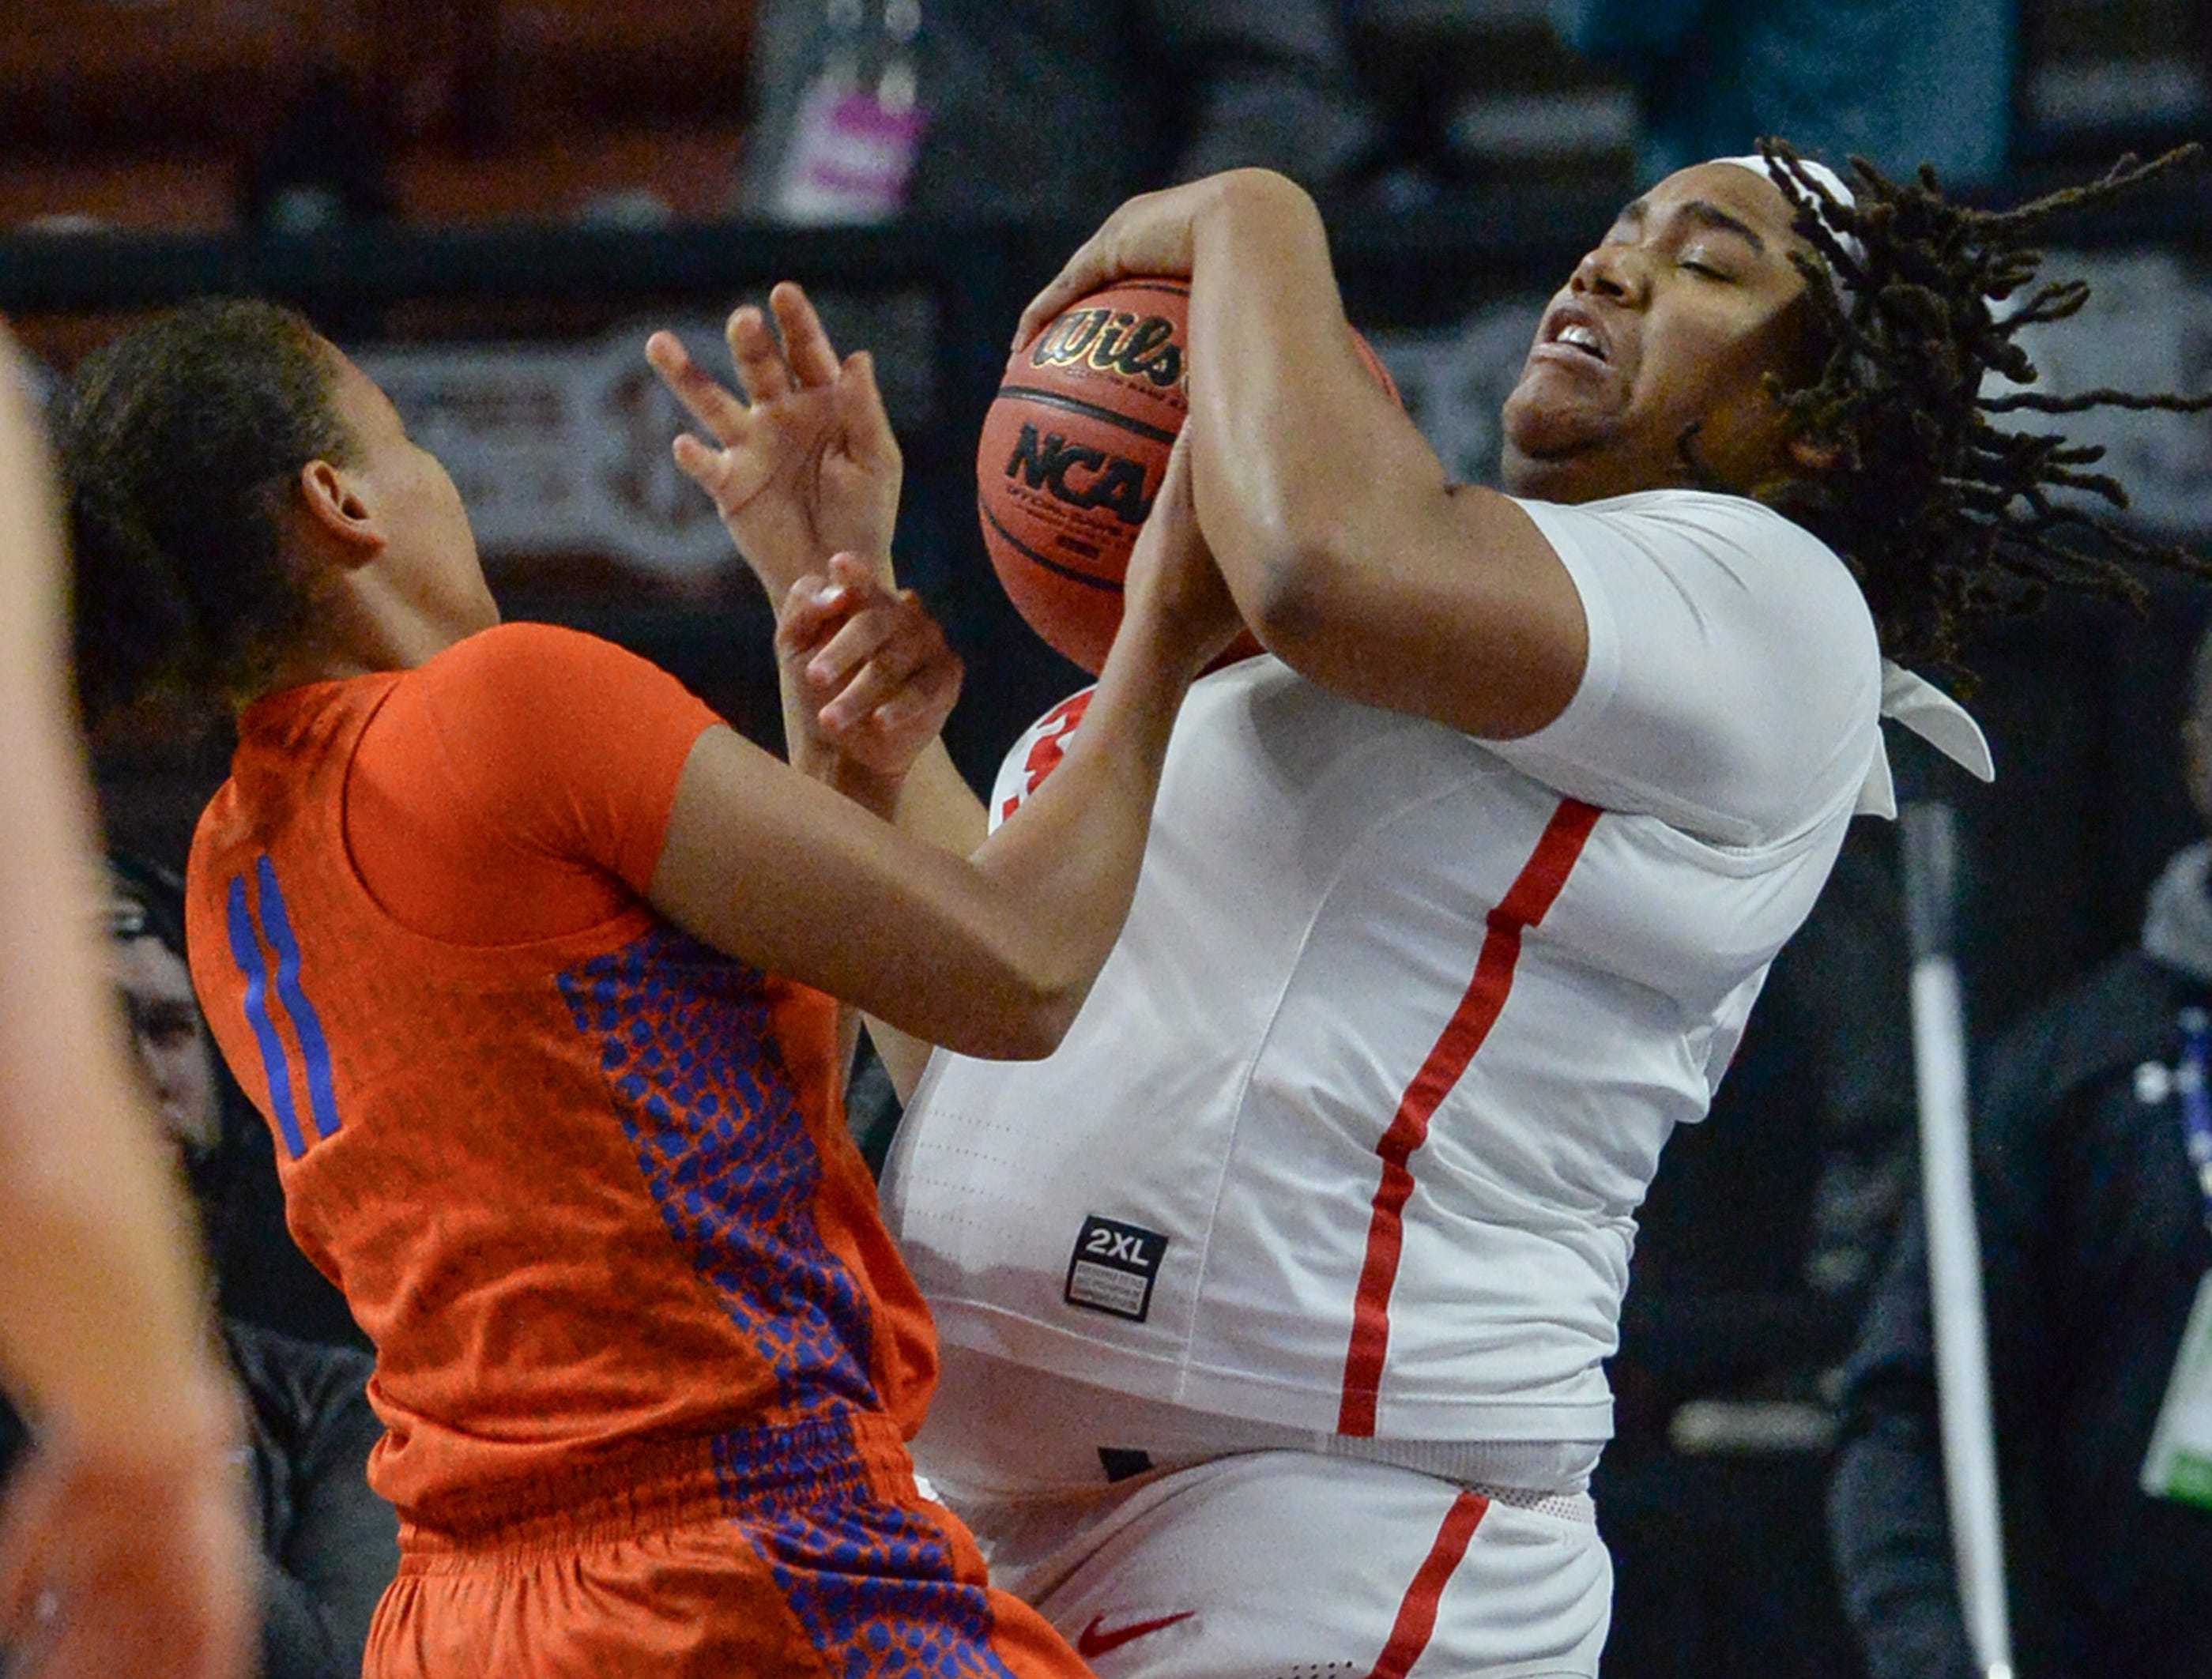 Florida guard Emanuely de Oliveira(11) pressures Ole Miss senior La'Karis Salter(33) during the fourth quarter of the Southeastern Conference Women's Tournament game at Bon Secour Wellness Arena in Greenville Wednesday, March 6, 2019.